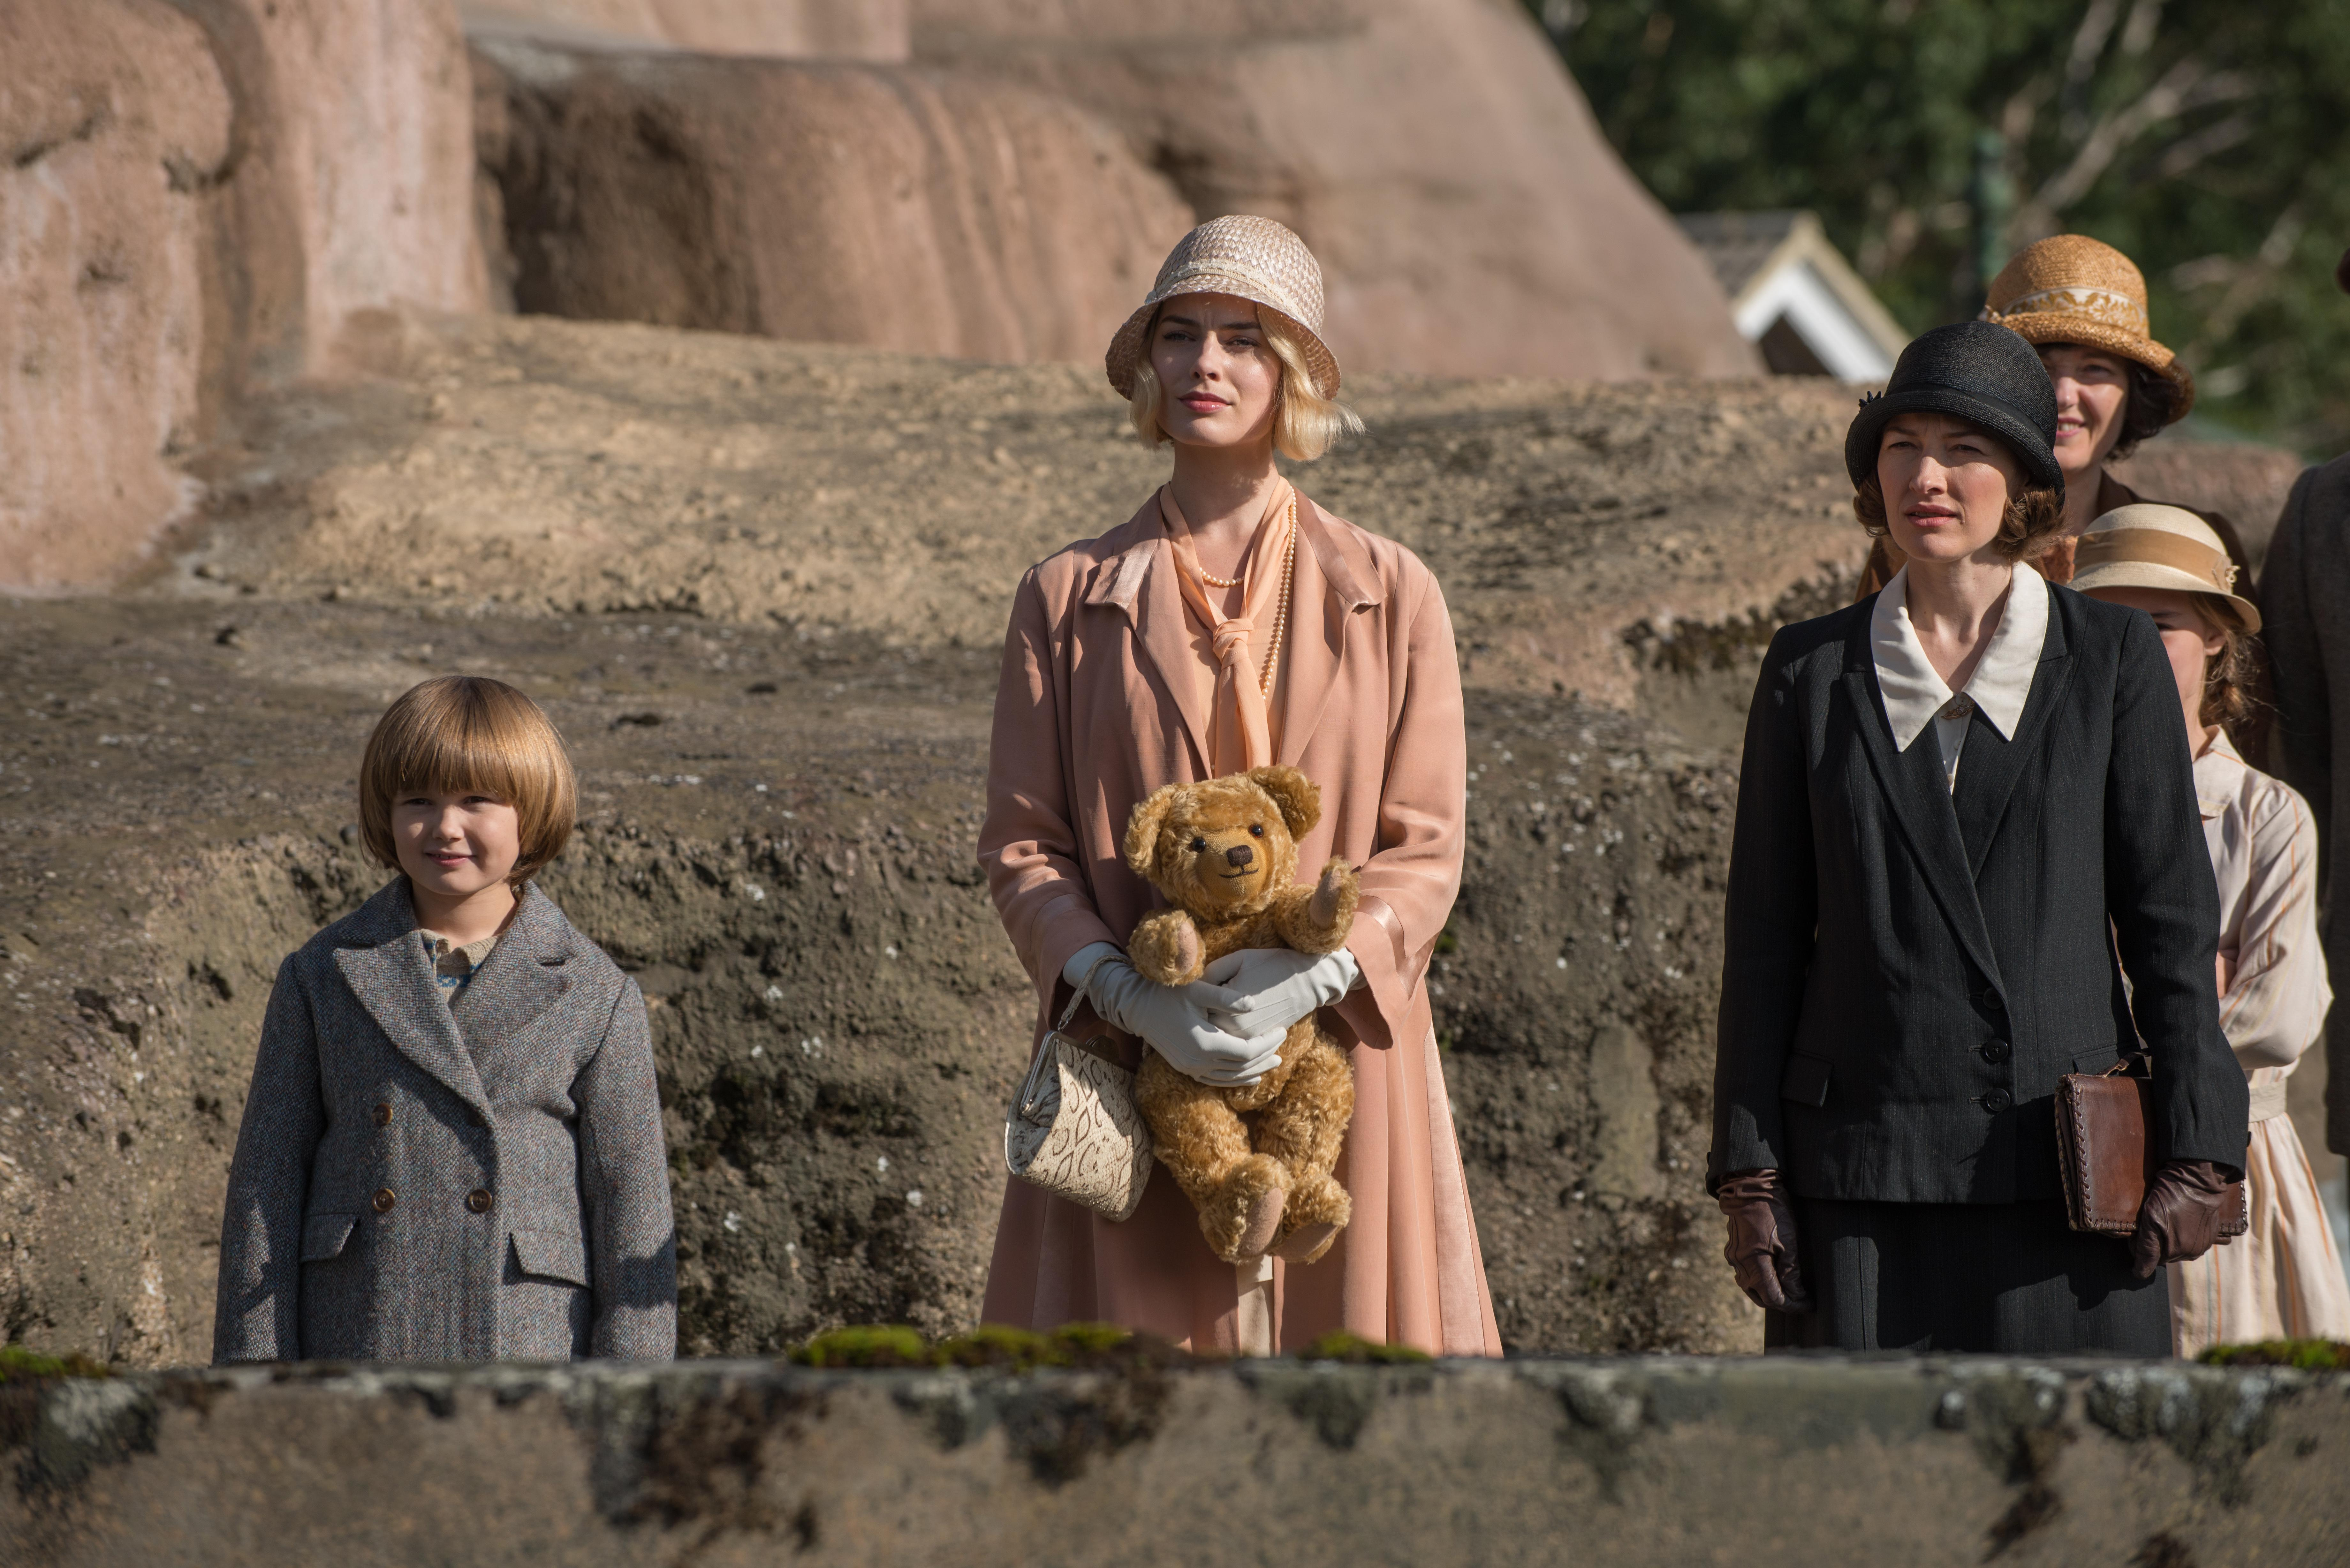 Will Tilston, Margot Robbie and Kelly Macdonald in the film GOODBYE CHRISTOPHER ROBIN. Photo by David Appleby. © 2017 Twentieth Century Fox Film Corporation All Rights Reserved